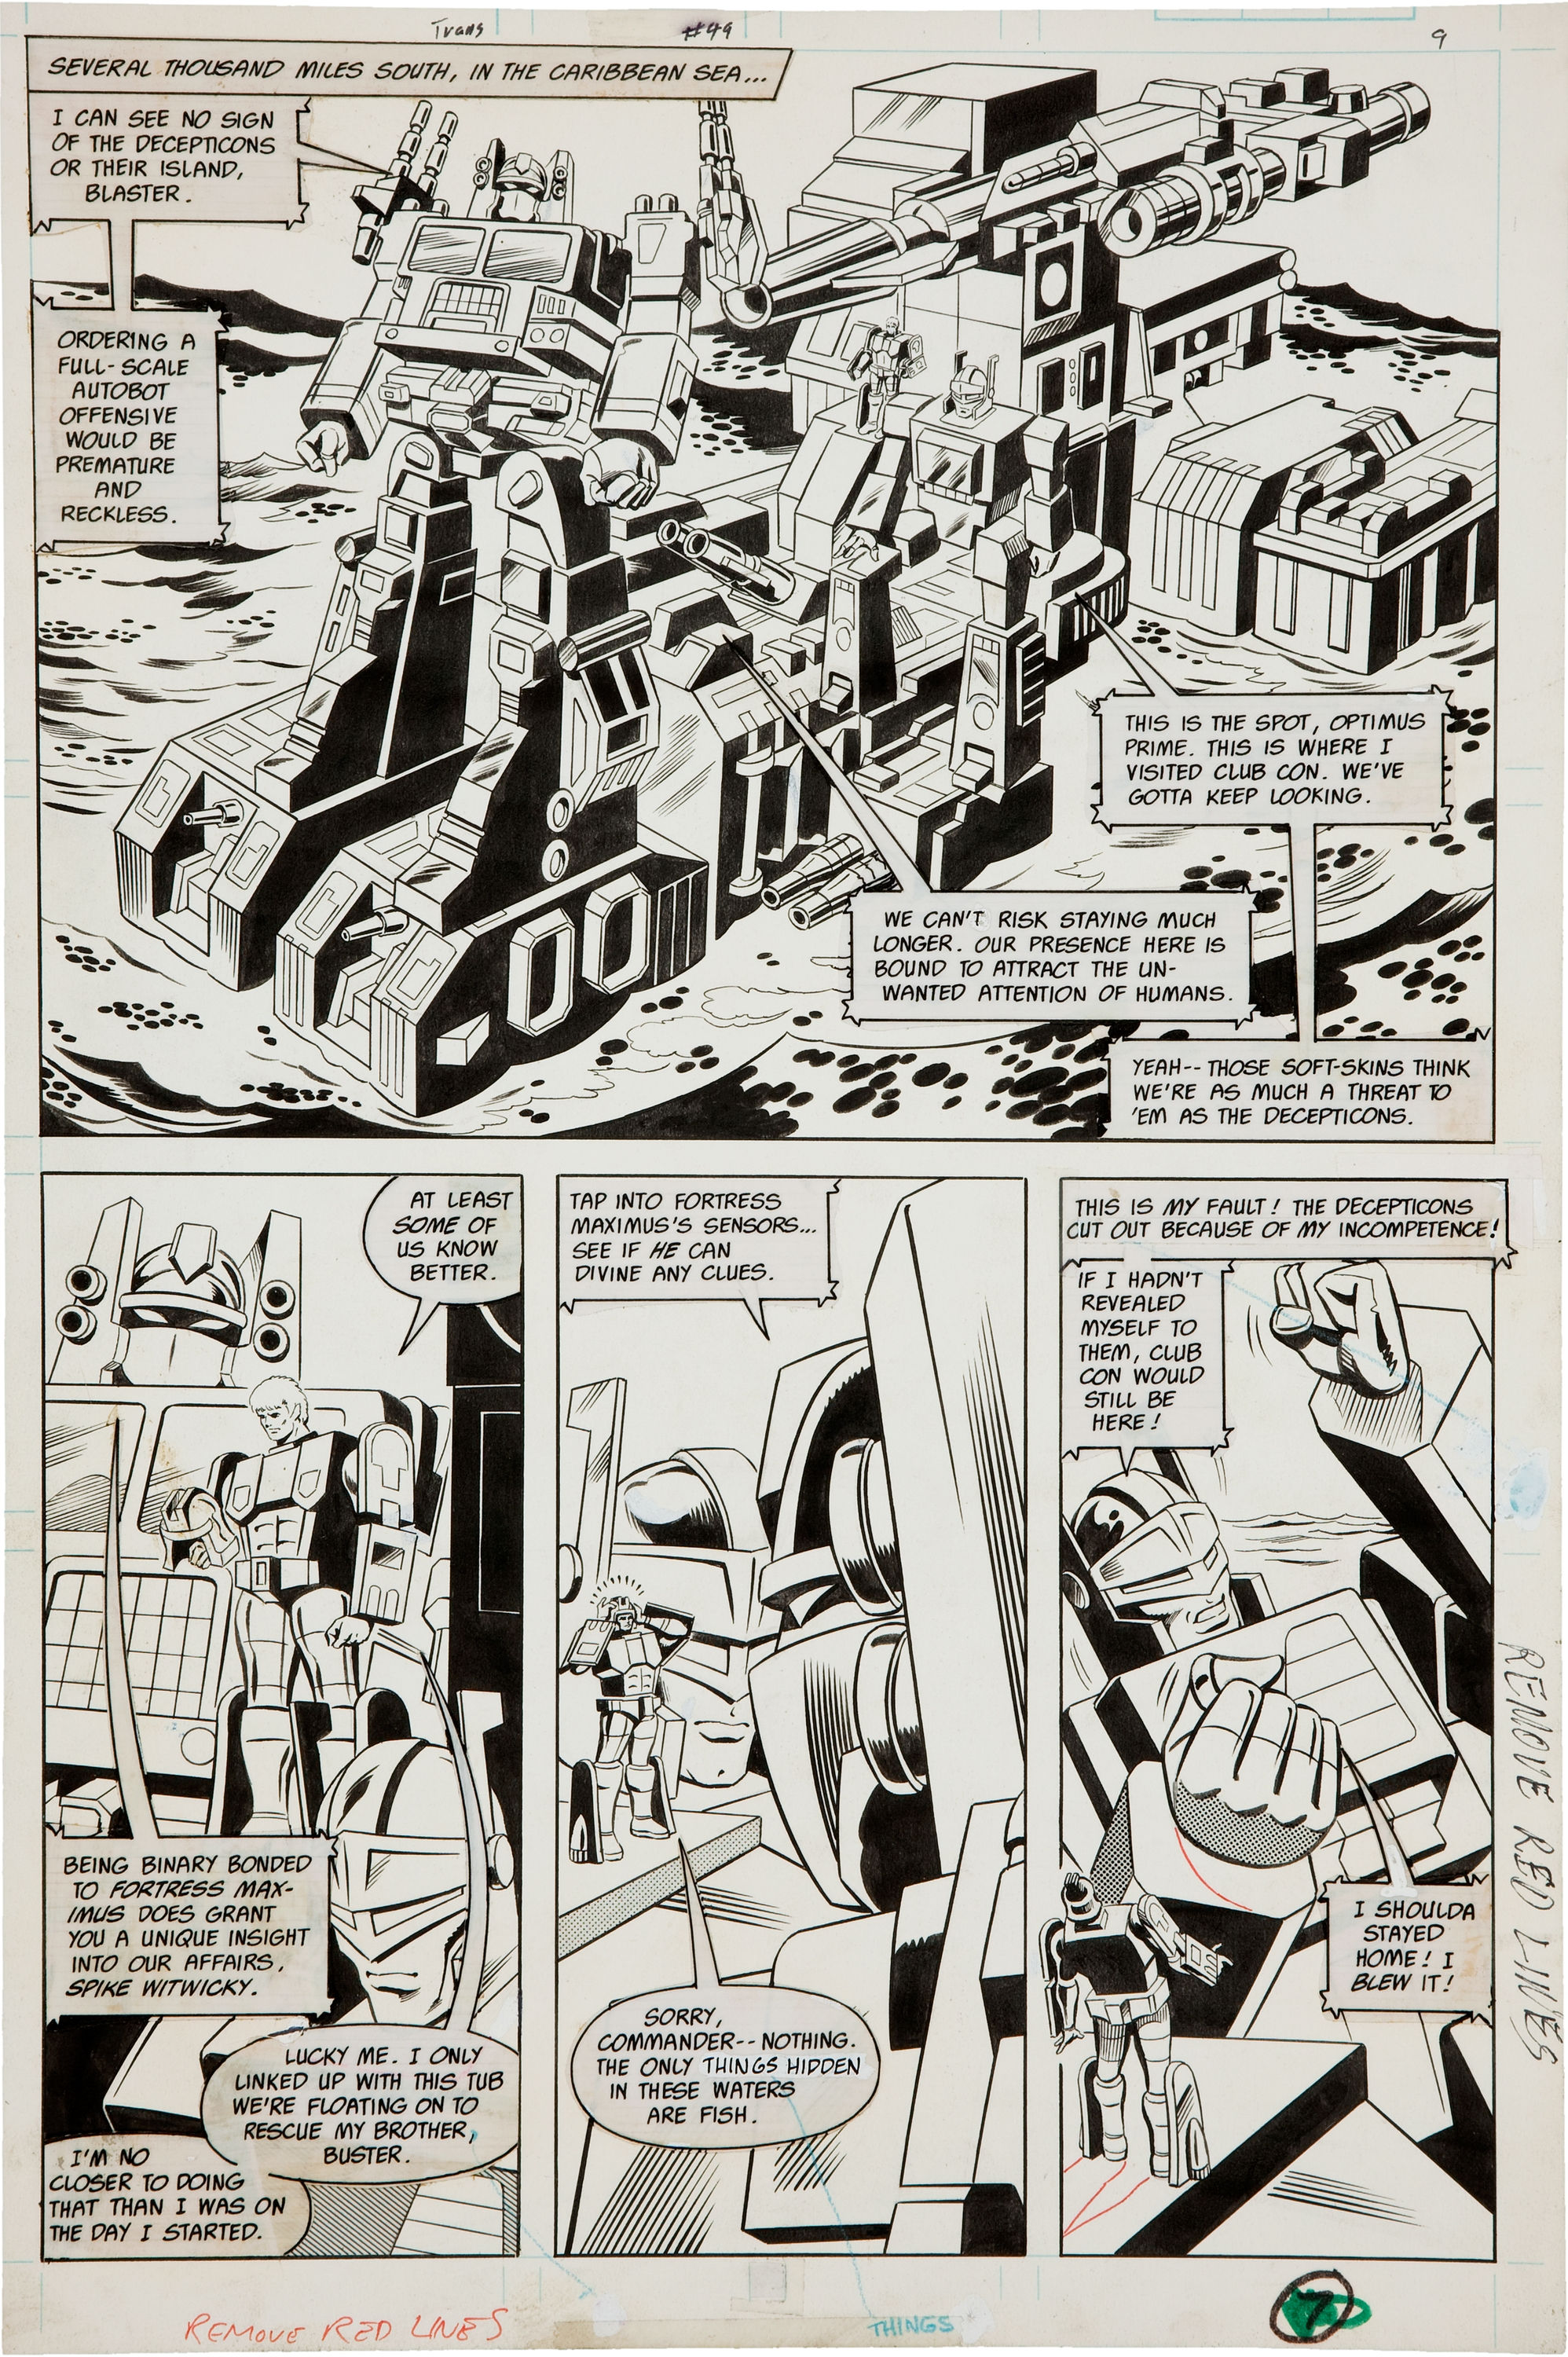 Be Nelson Yomtov! (Colorists, Tackle an Original Transformers Marvel Comics Page!)-jose-20delbo-20transformers-2049-20page.jpg